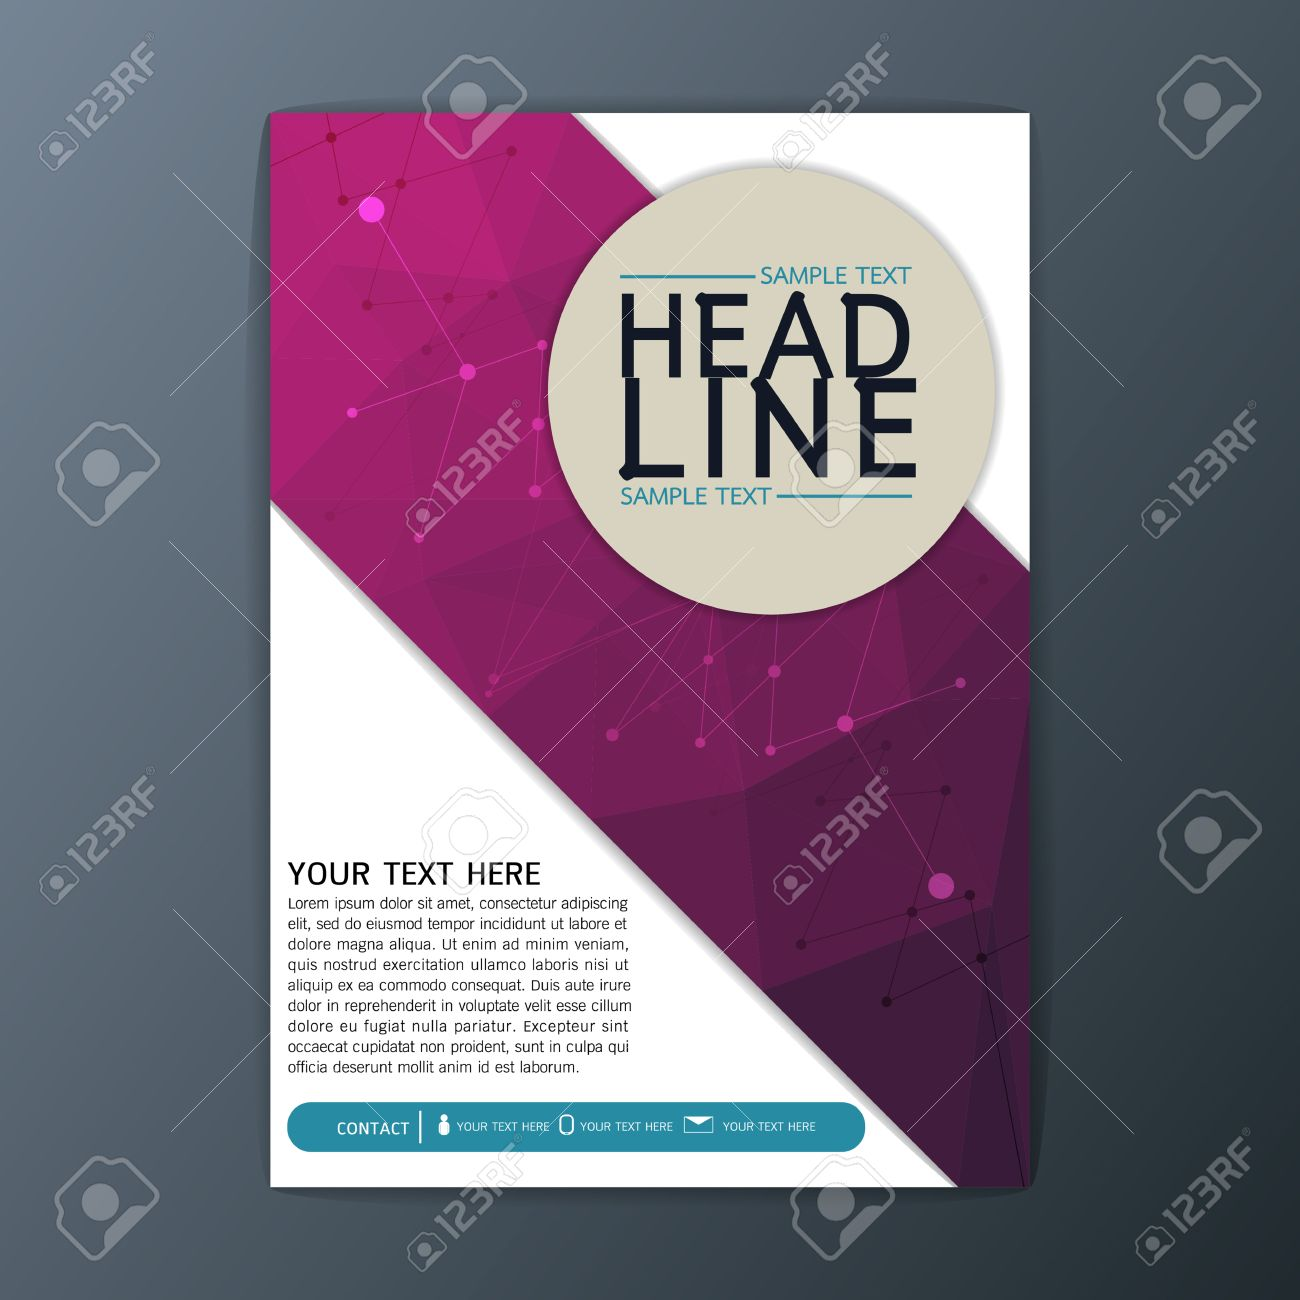 creative abstract polygon background design business corporate creative abstract polygon background design business corporate brochure template flyer layout illustration stock vector